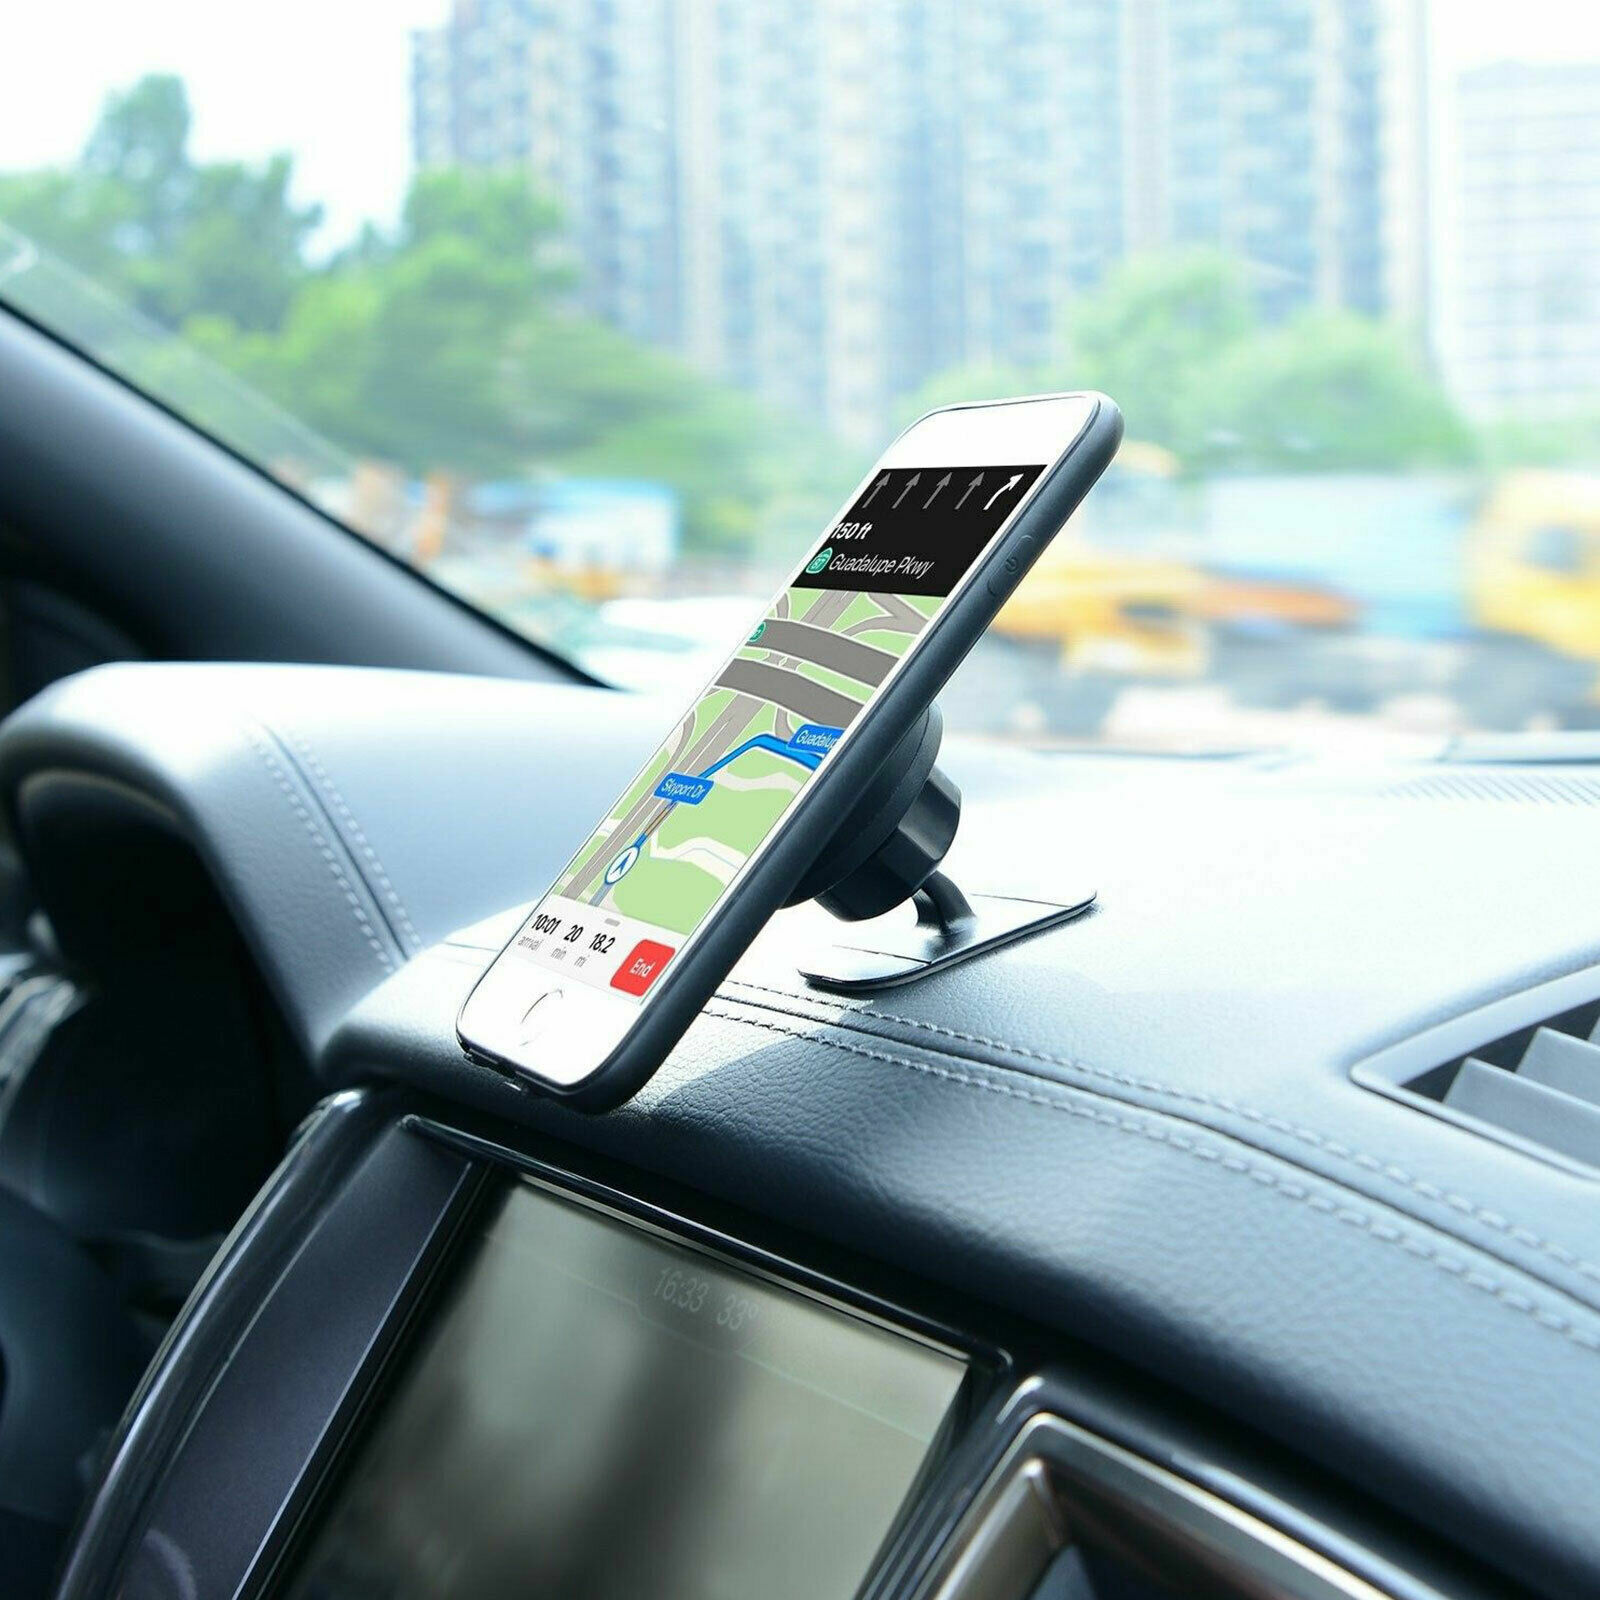 360° Magnetic Car Mount Holder Stand Stick On Dashboard For Cell Phone iPhone LG Cell Phone Accessories